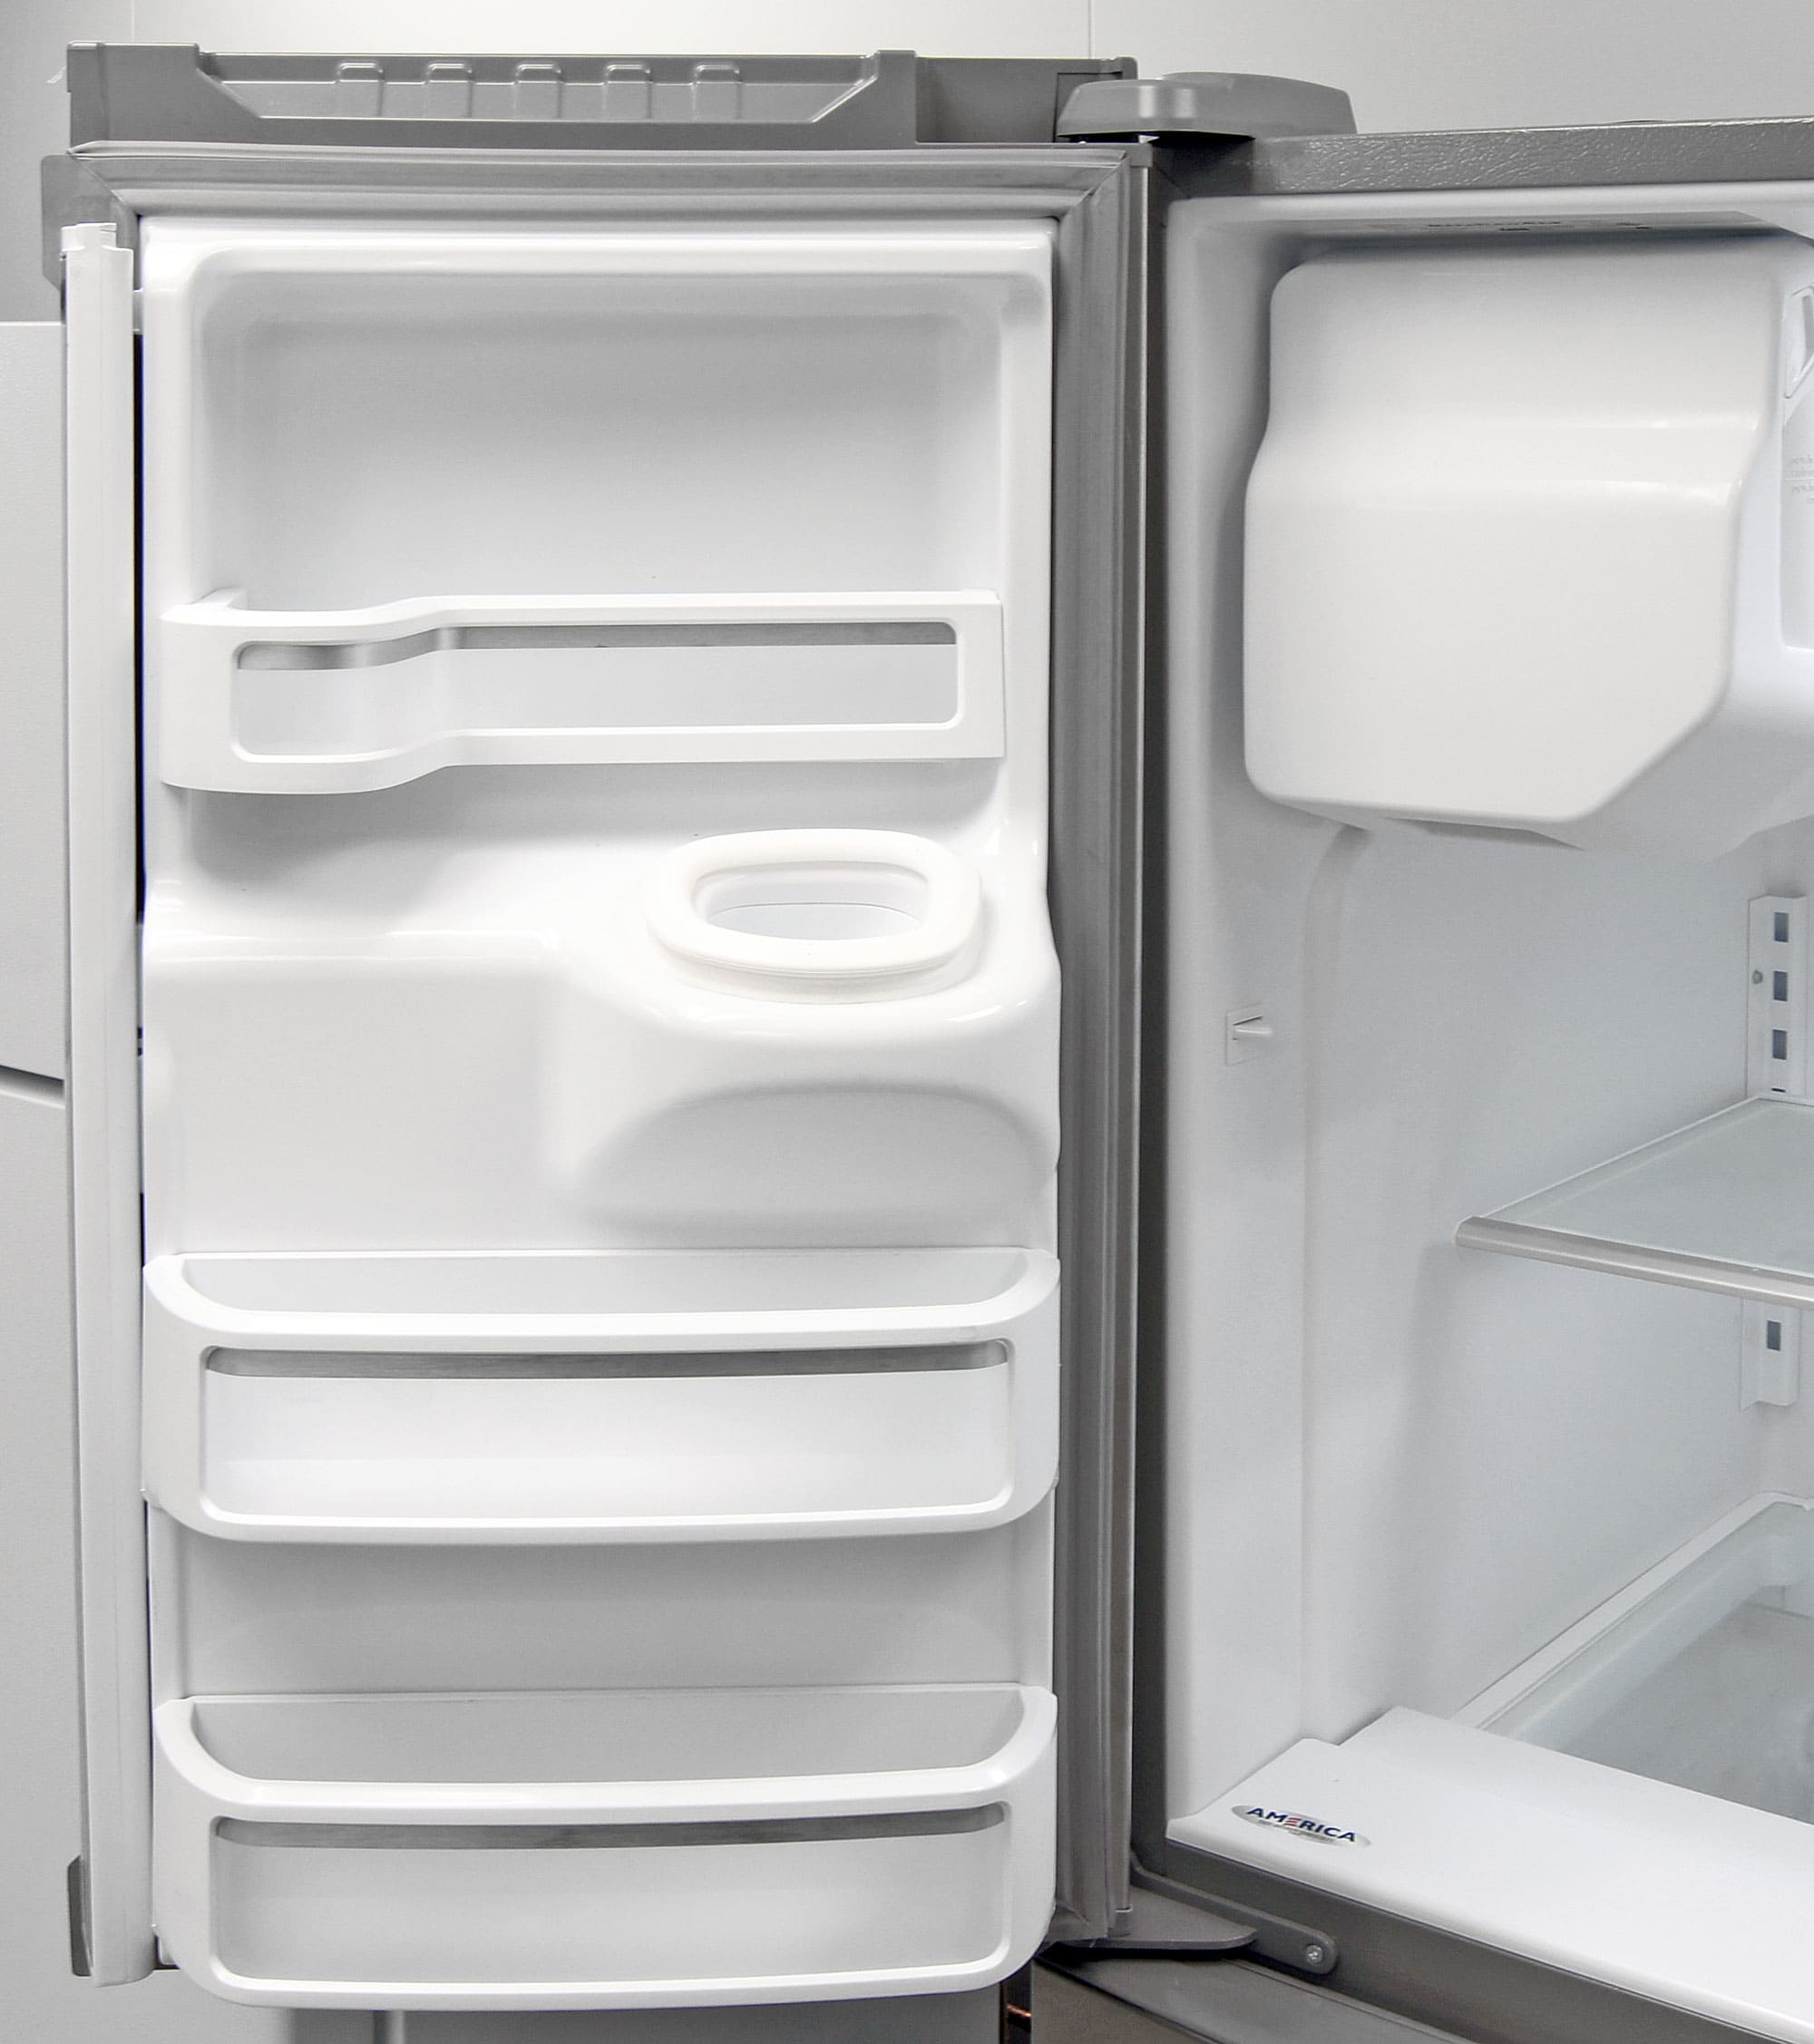 Storage on the left fridge door is distorted to accommodate the KitchenAid KFXS25RYMS's ice dispenser chute.